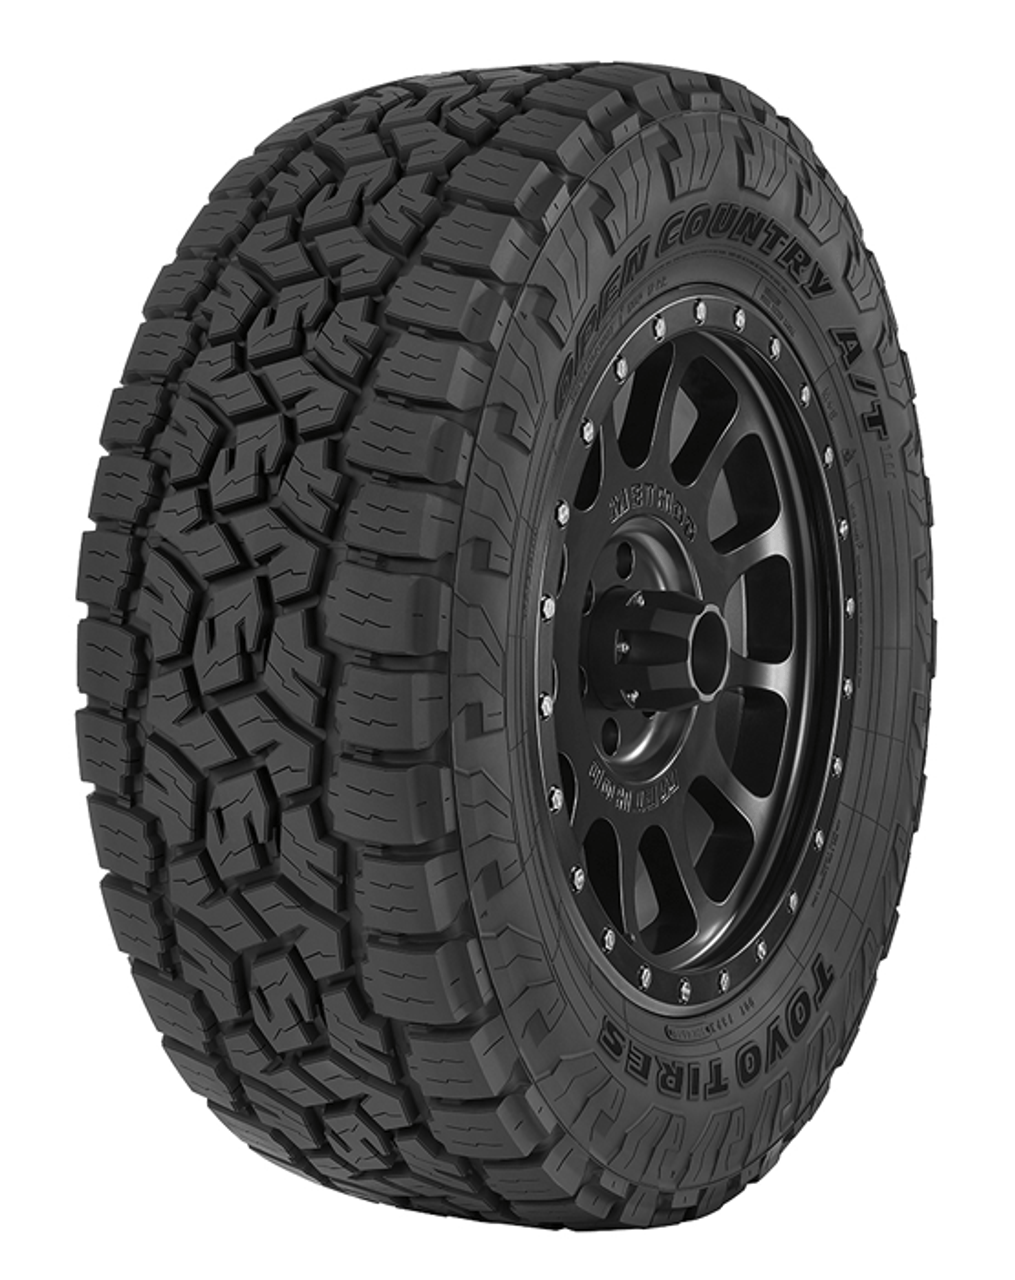 toyo open country atiii tire 285 55r20 p sl 114t bsw free road hazard coverage